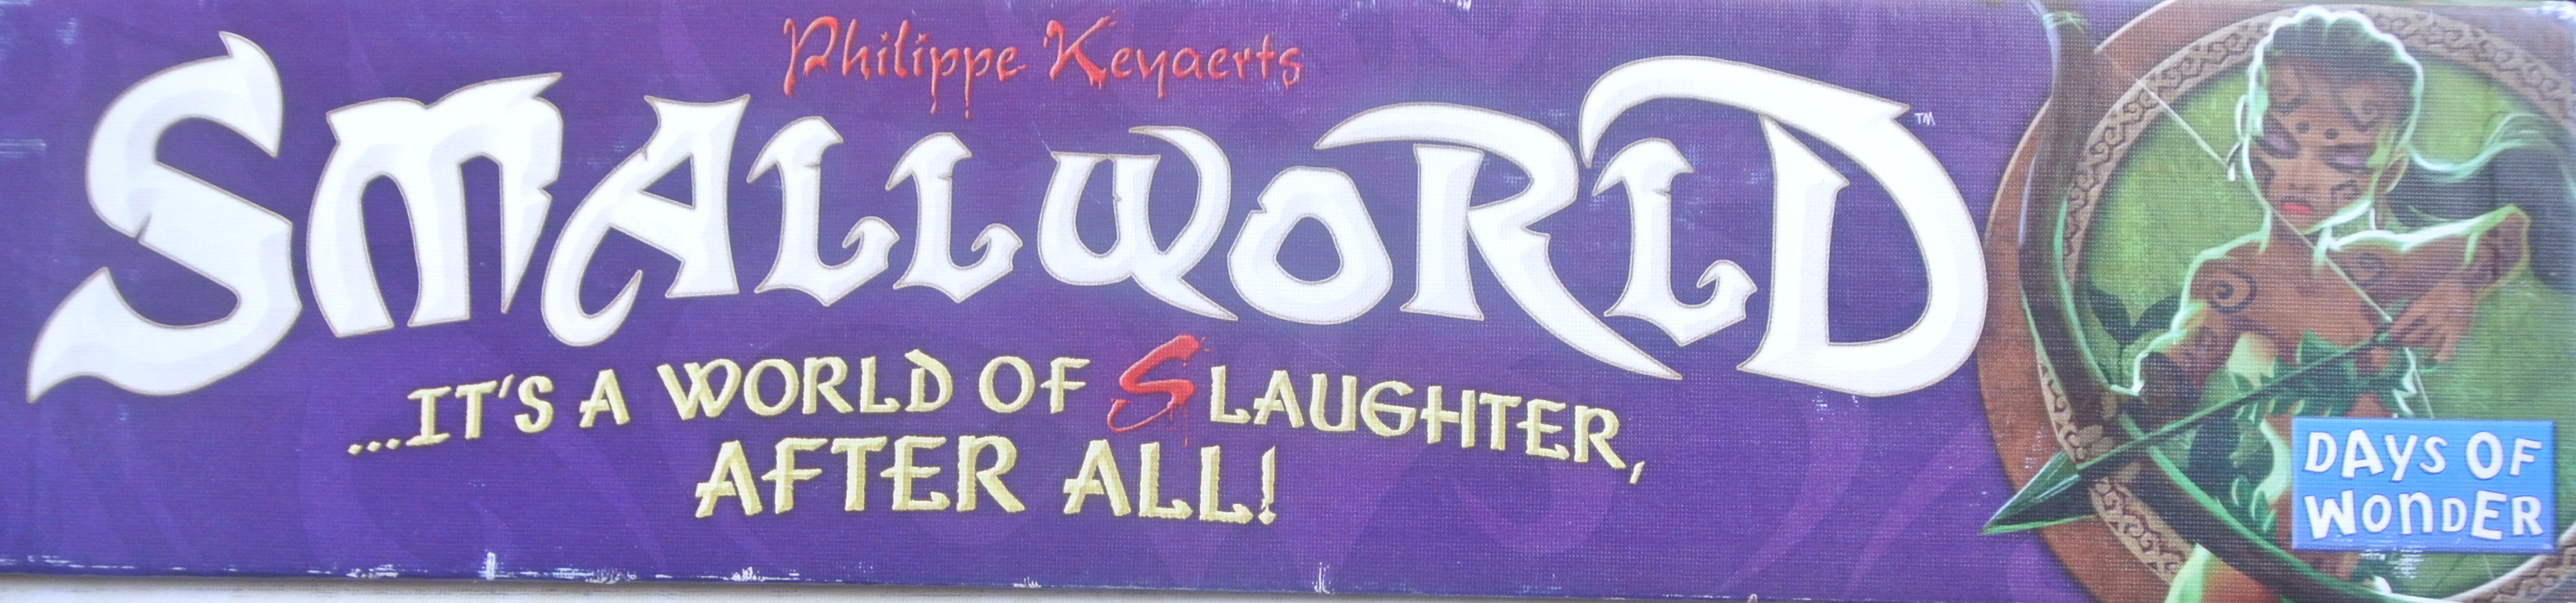 "Small World box art, depicting the tagline ""It's a World of (S)laughter After All."" Image used with permission of the author, and reproduced for purposes of critique."